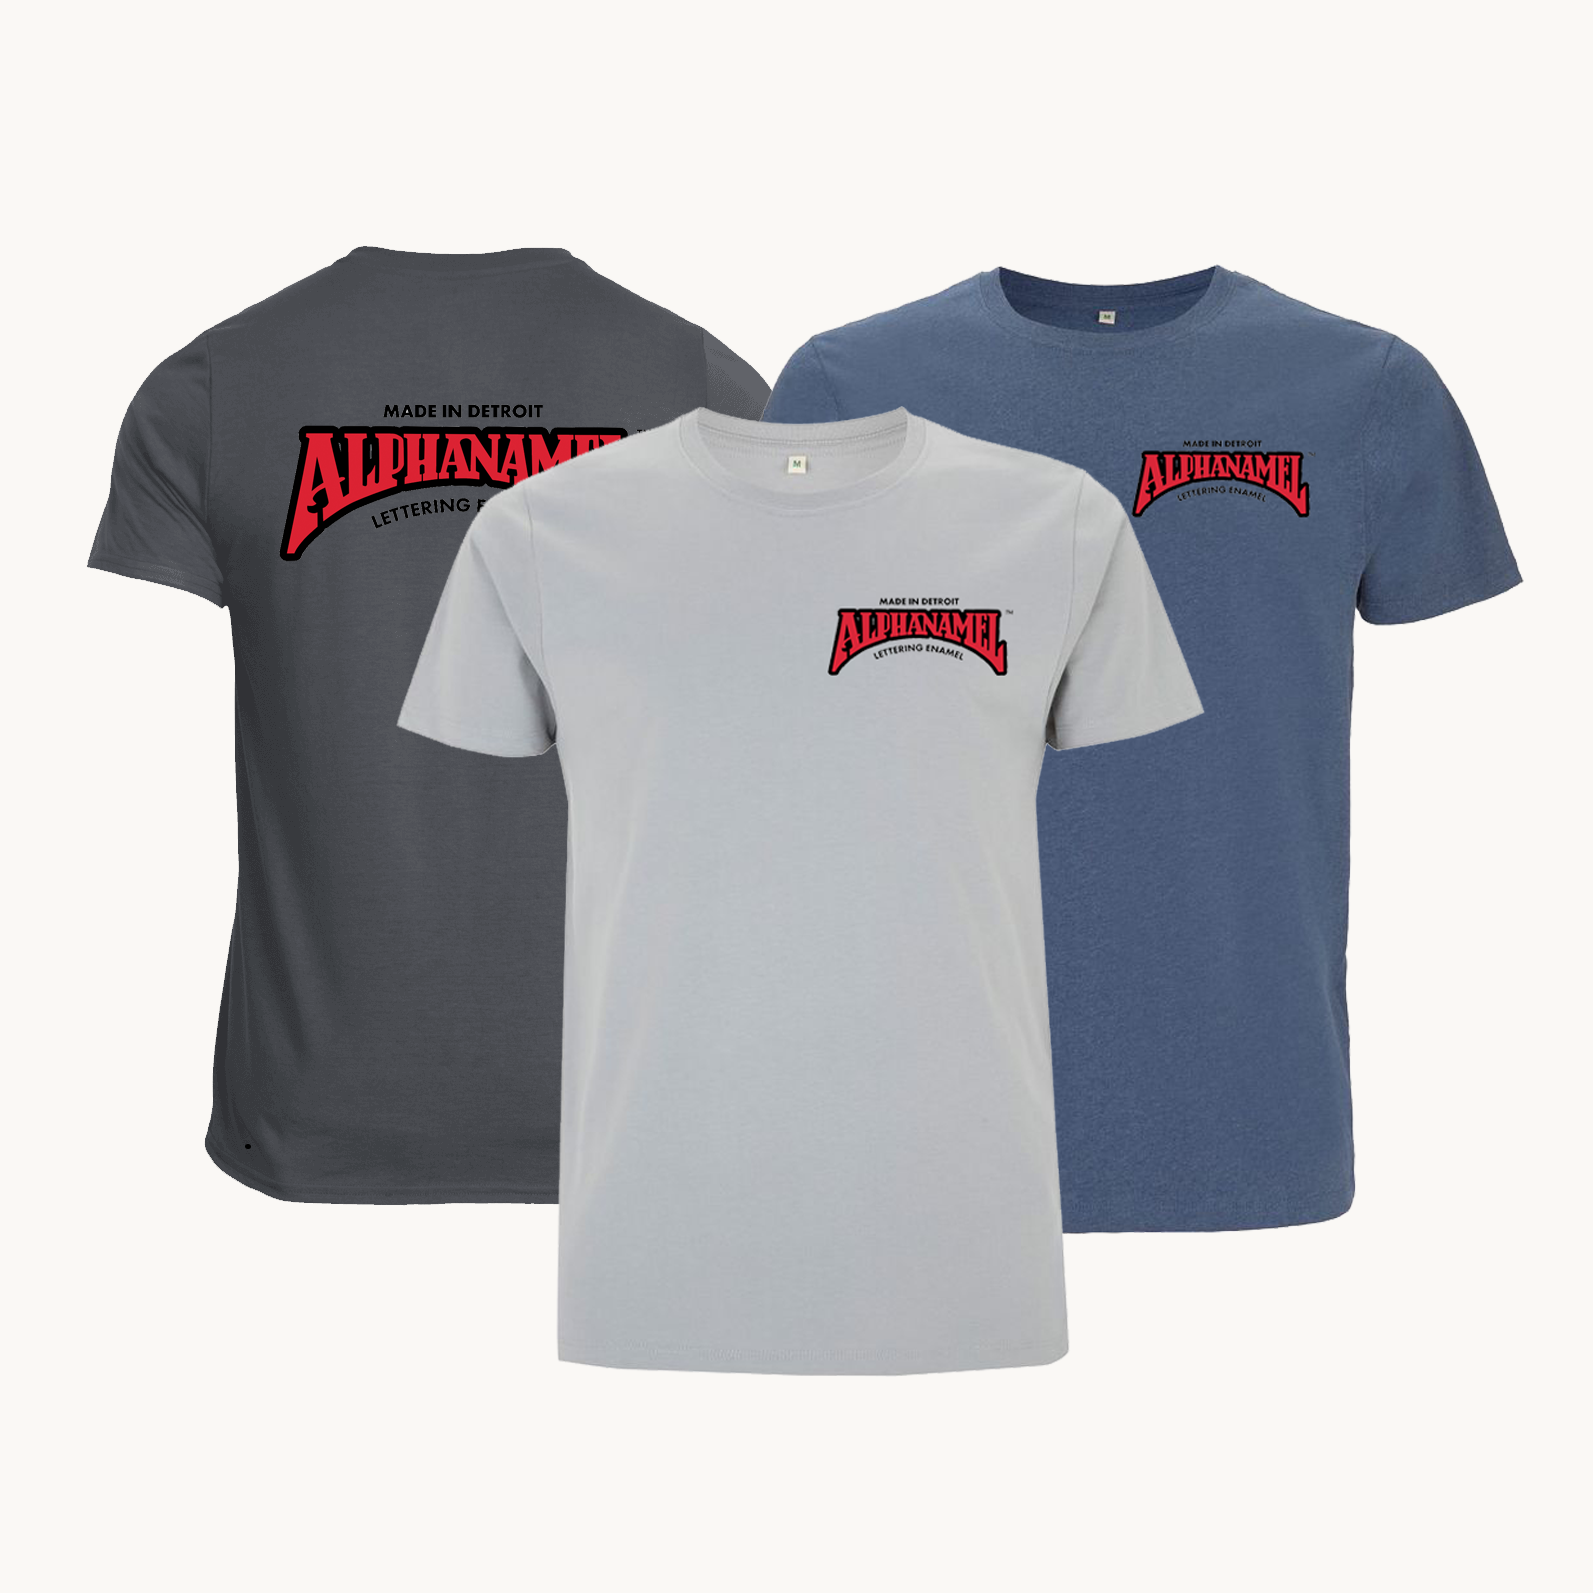 Alphanamel T-shirt